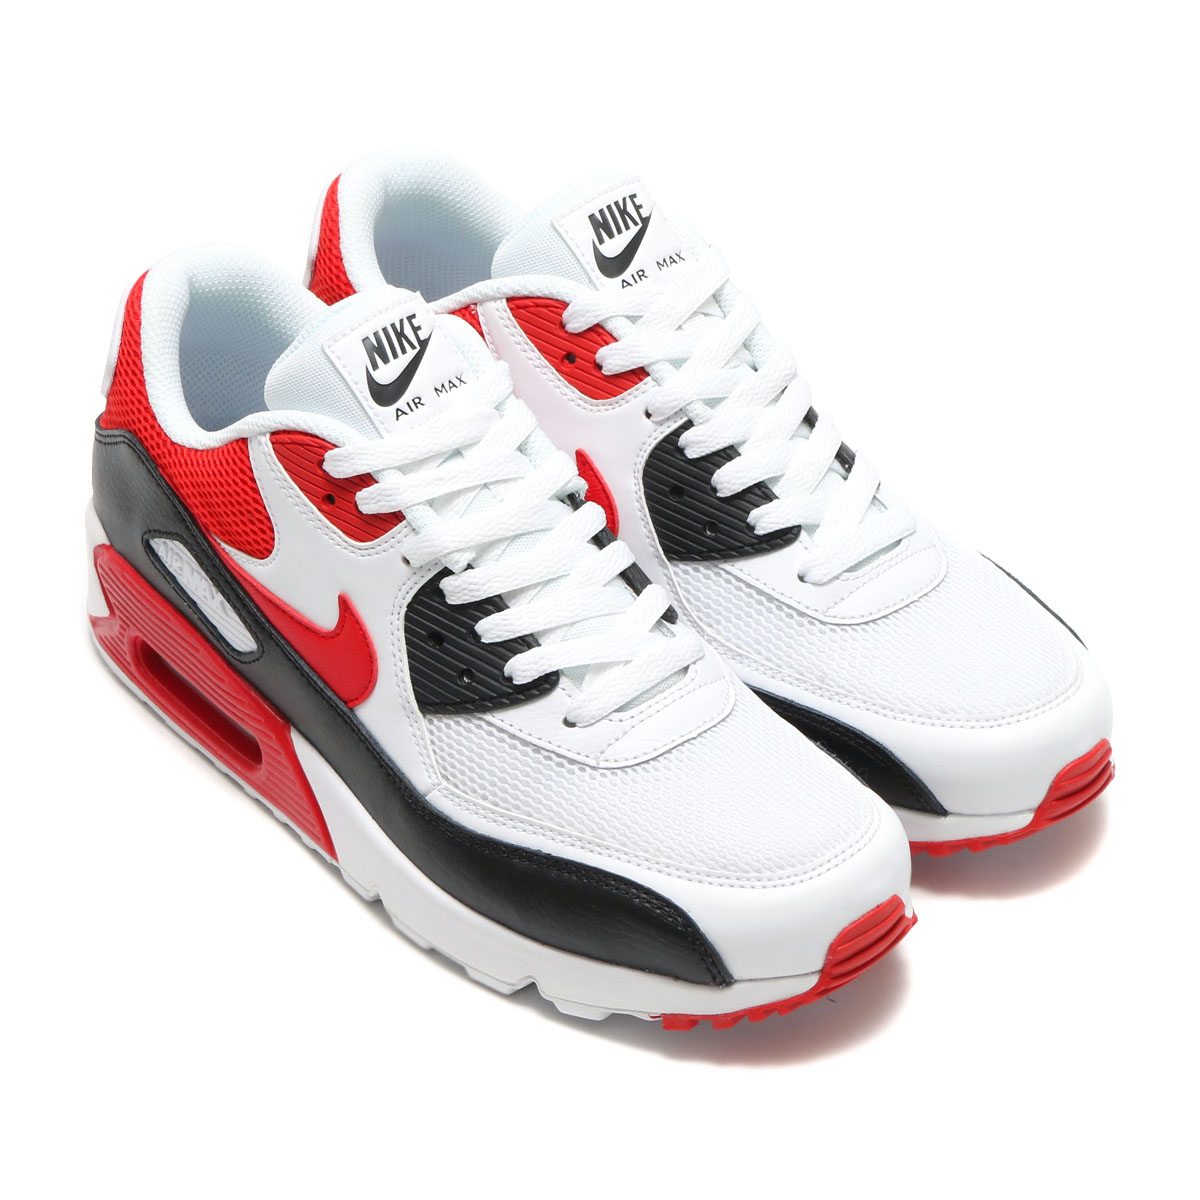 nike air max 90 white black university red